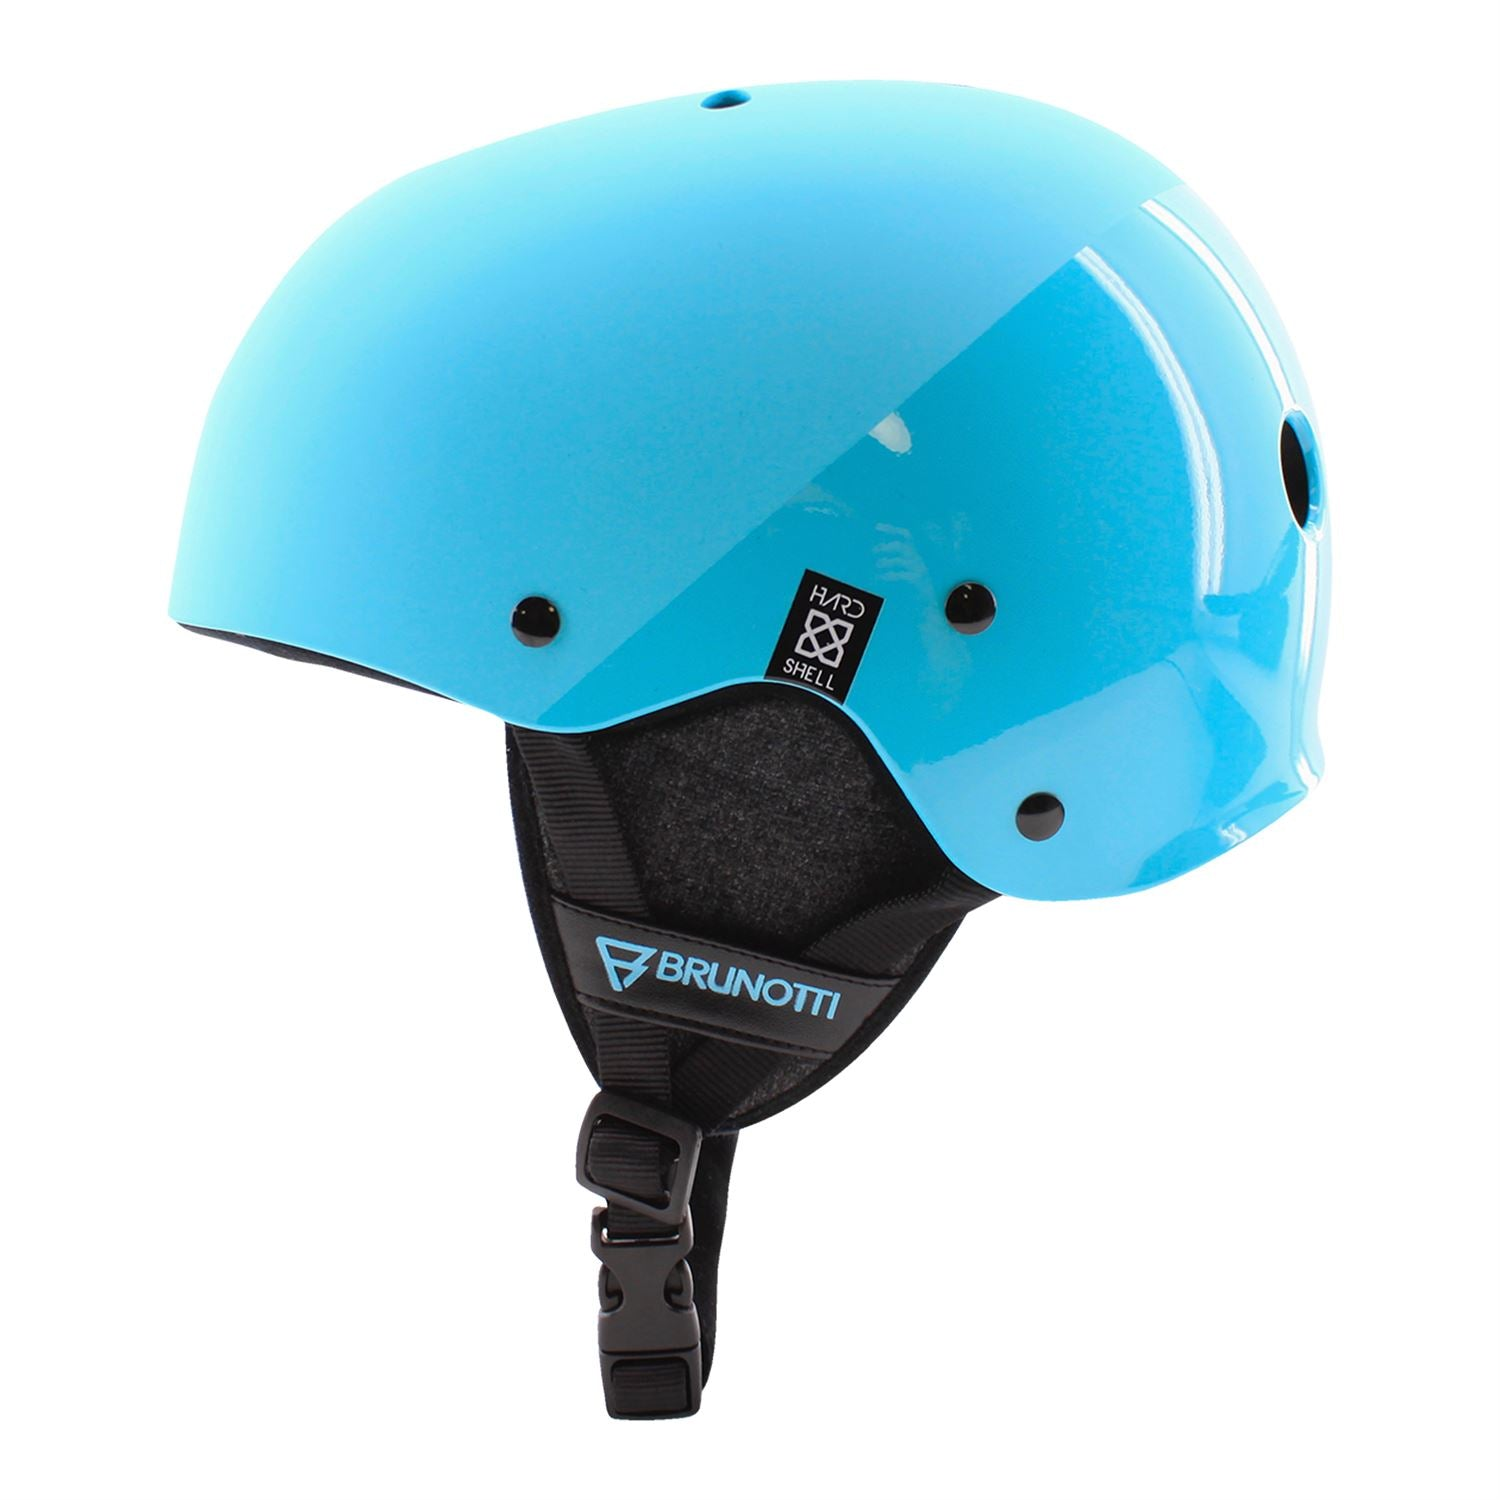 BRUNOTTI BRAND HELMET LIGHT BLUE